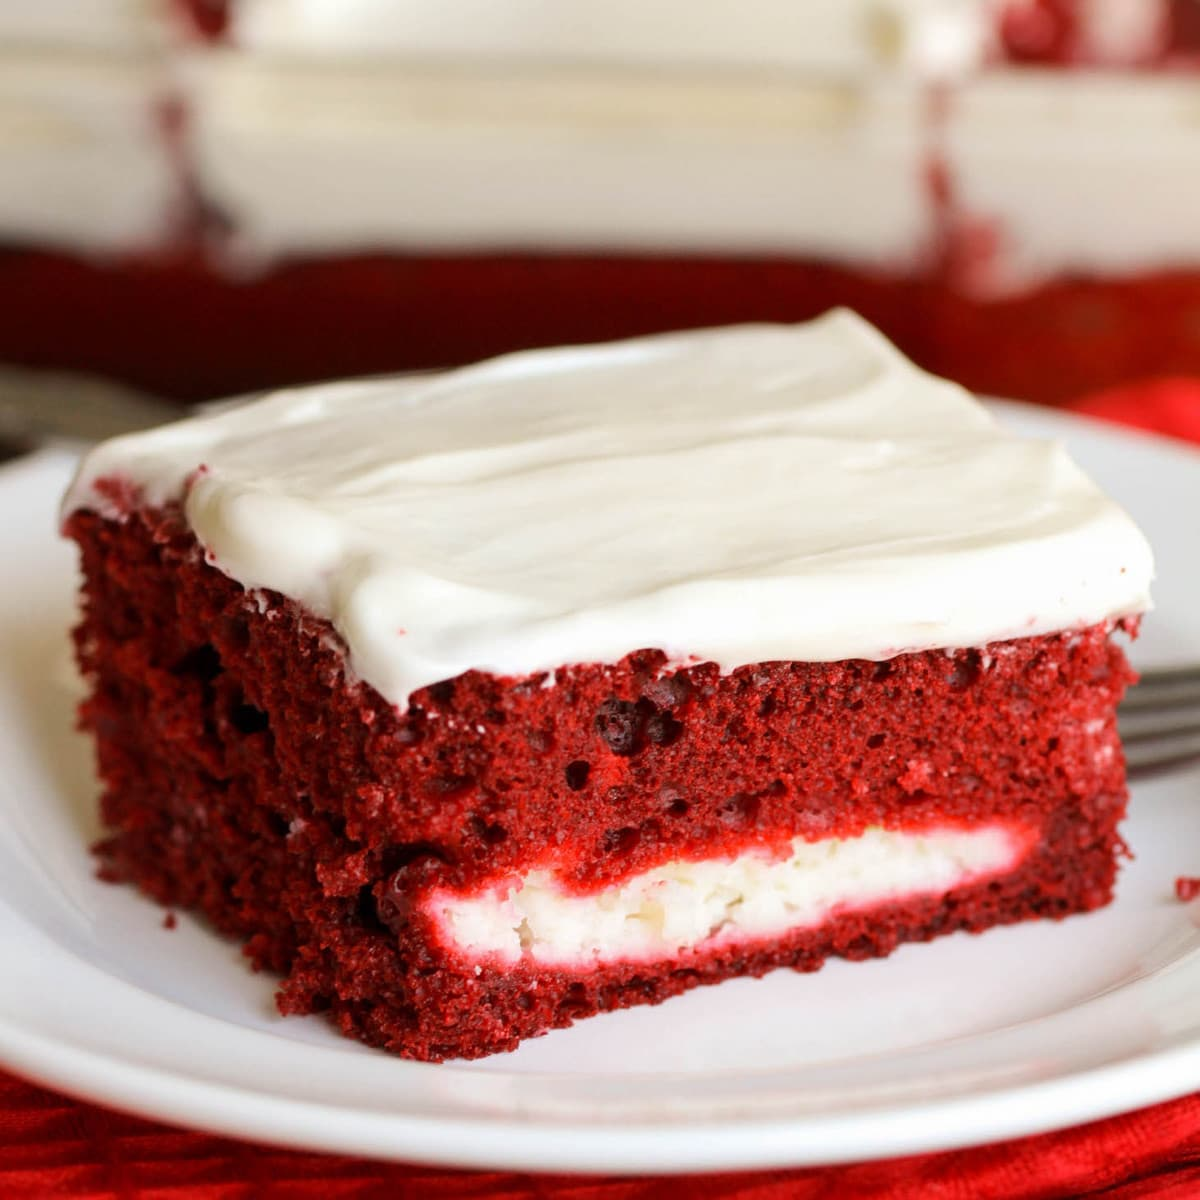 Red Velvet Cheesecake Cake on Plate